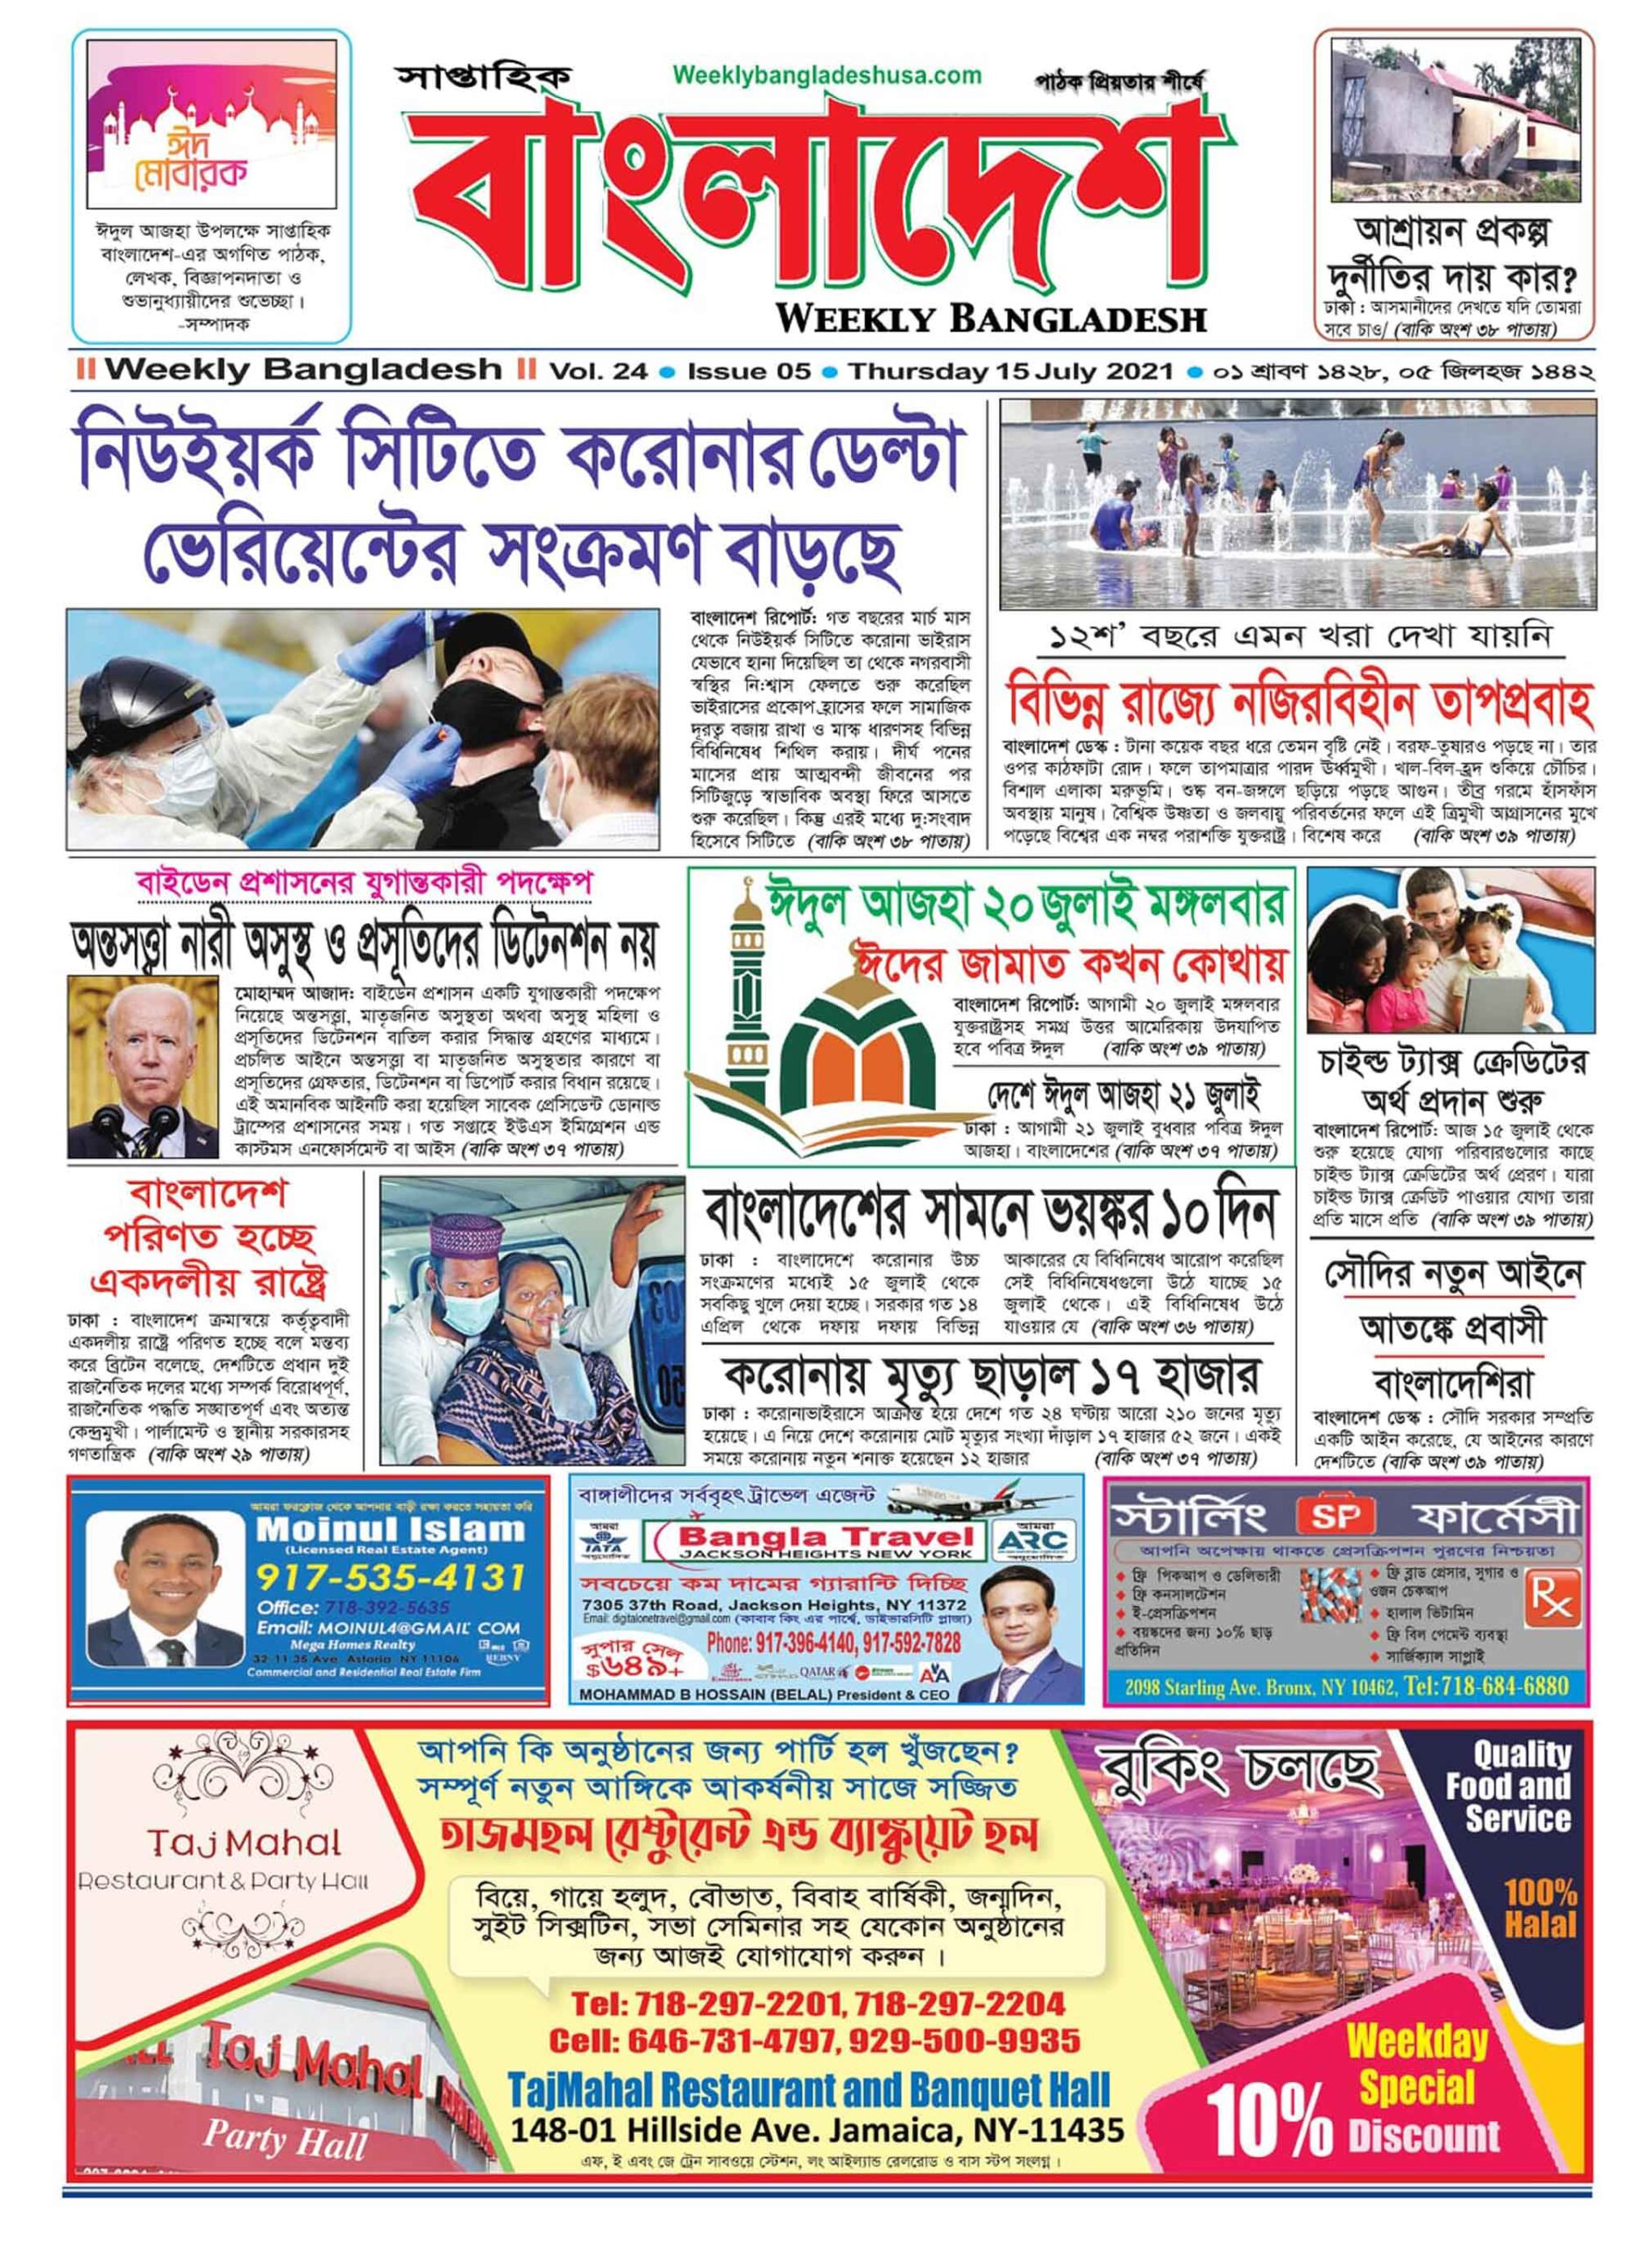 VOL 24, ISSUE 05, 15 July 2021